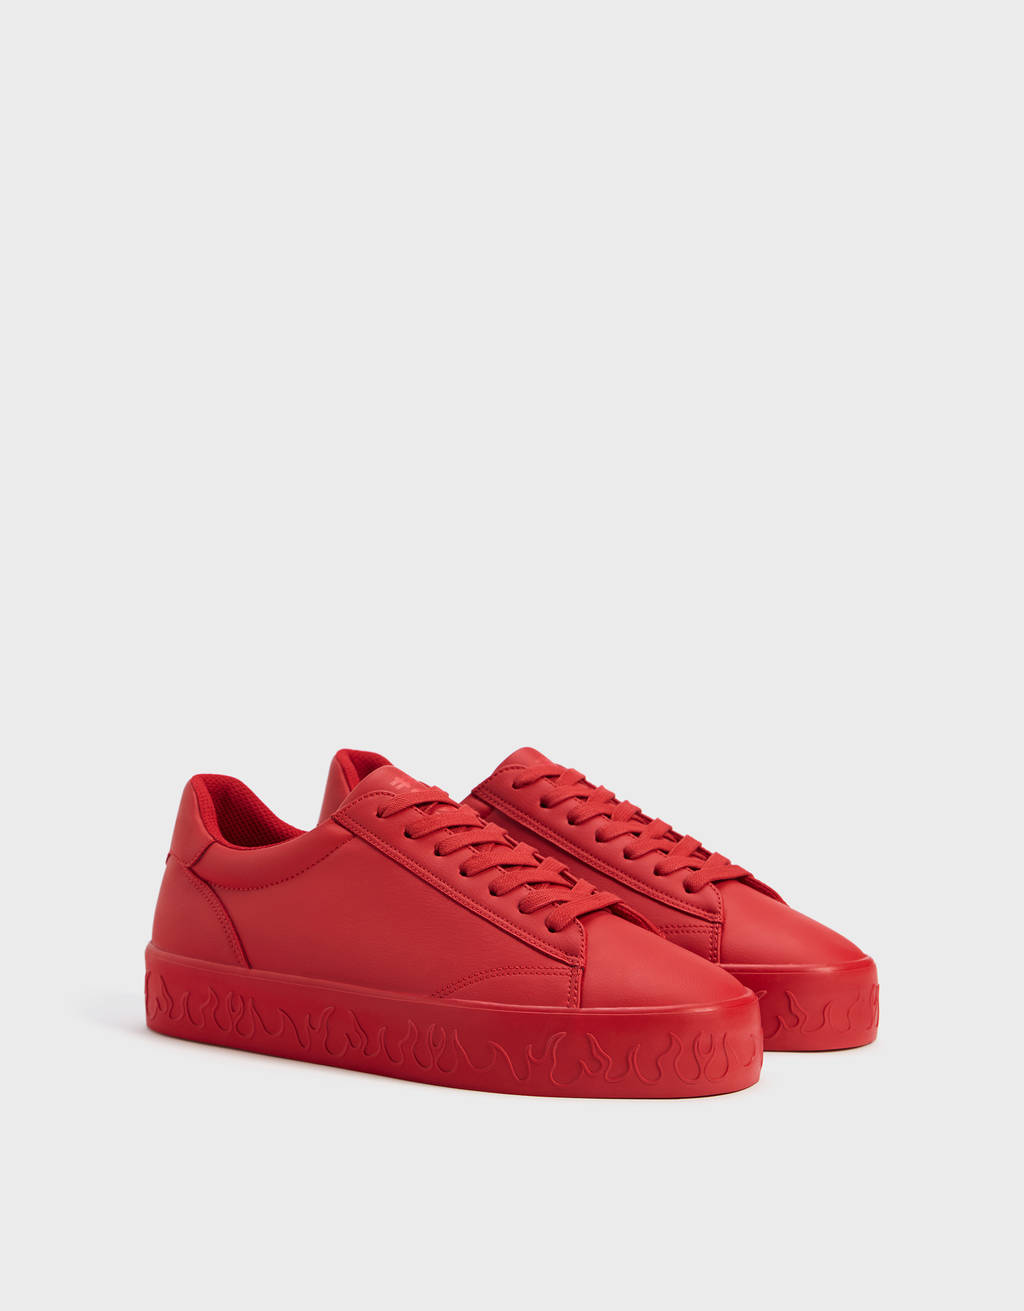 Men's Trainers With Flame Detail by Bershka